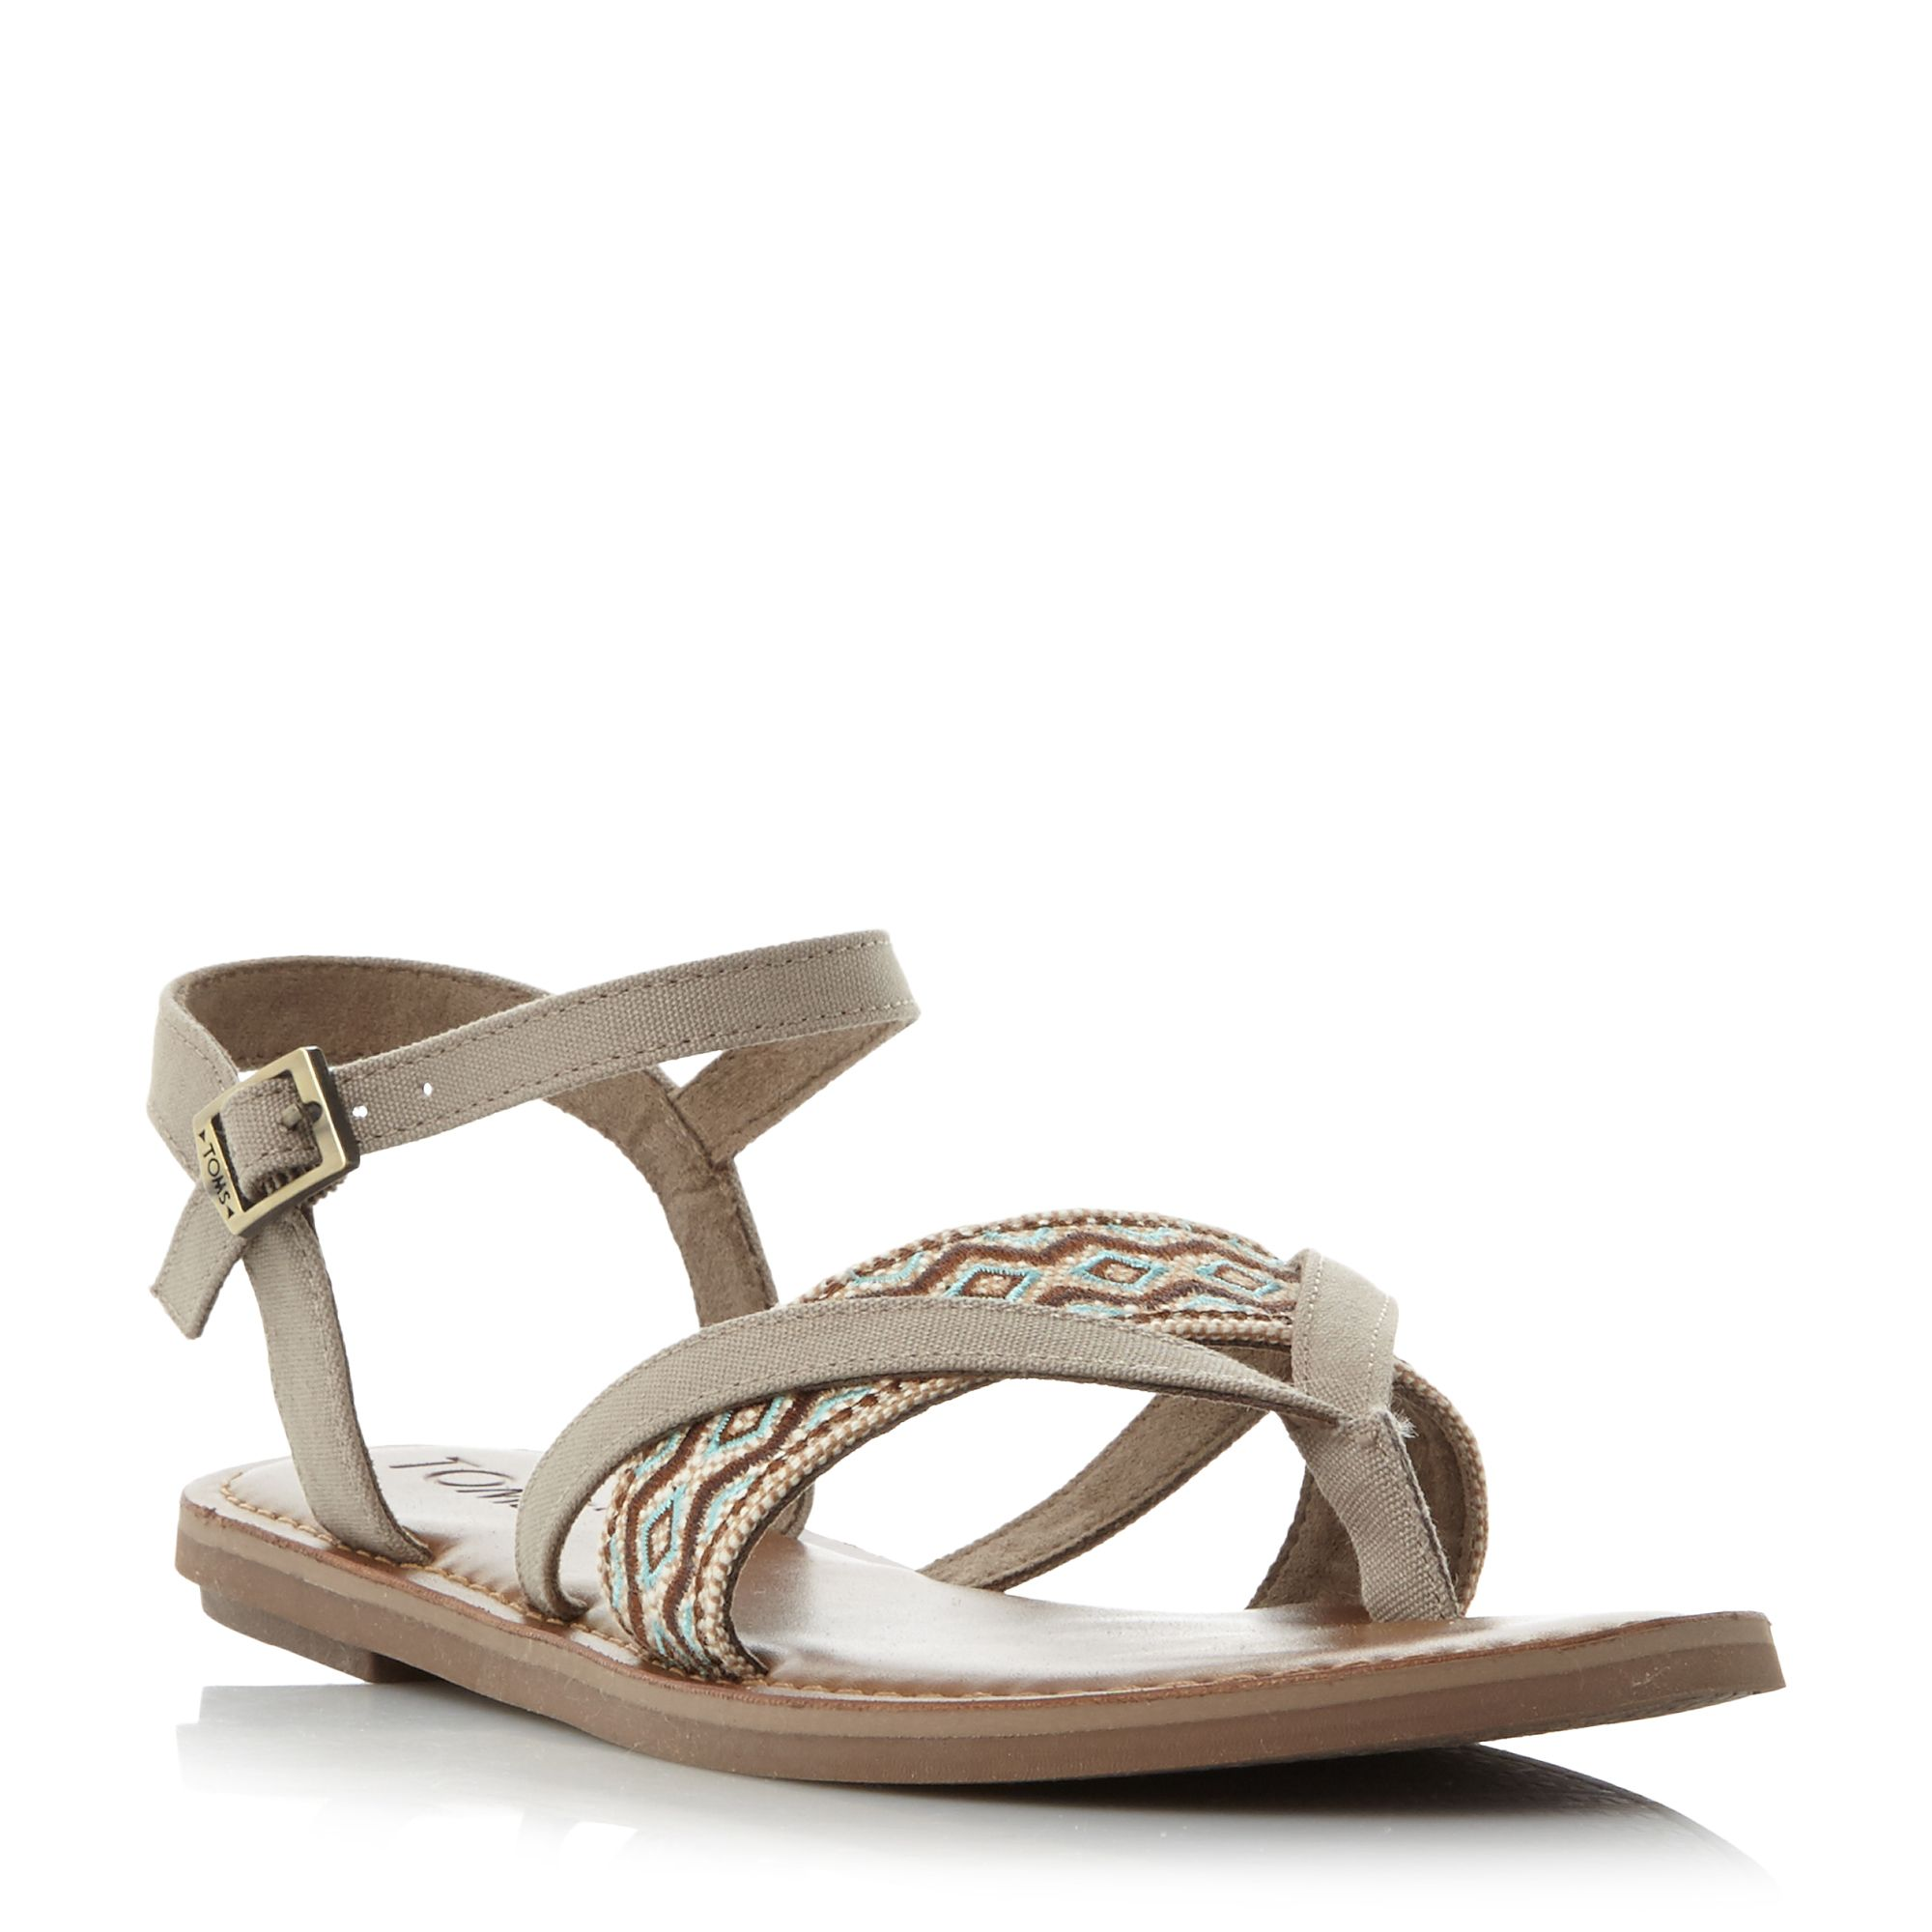 Toms Lexie Embroidered Flat Sandals, Neutral